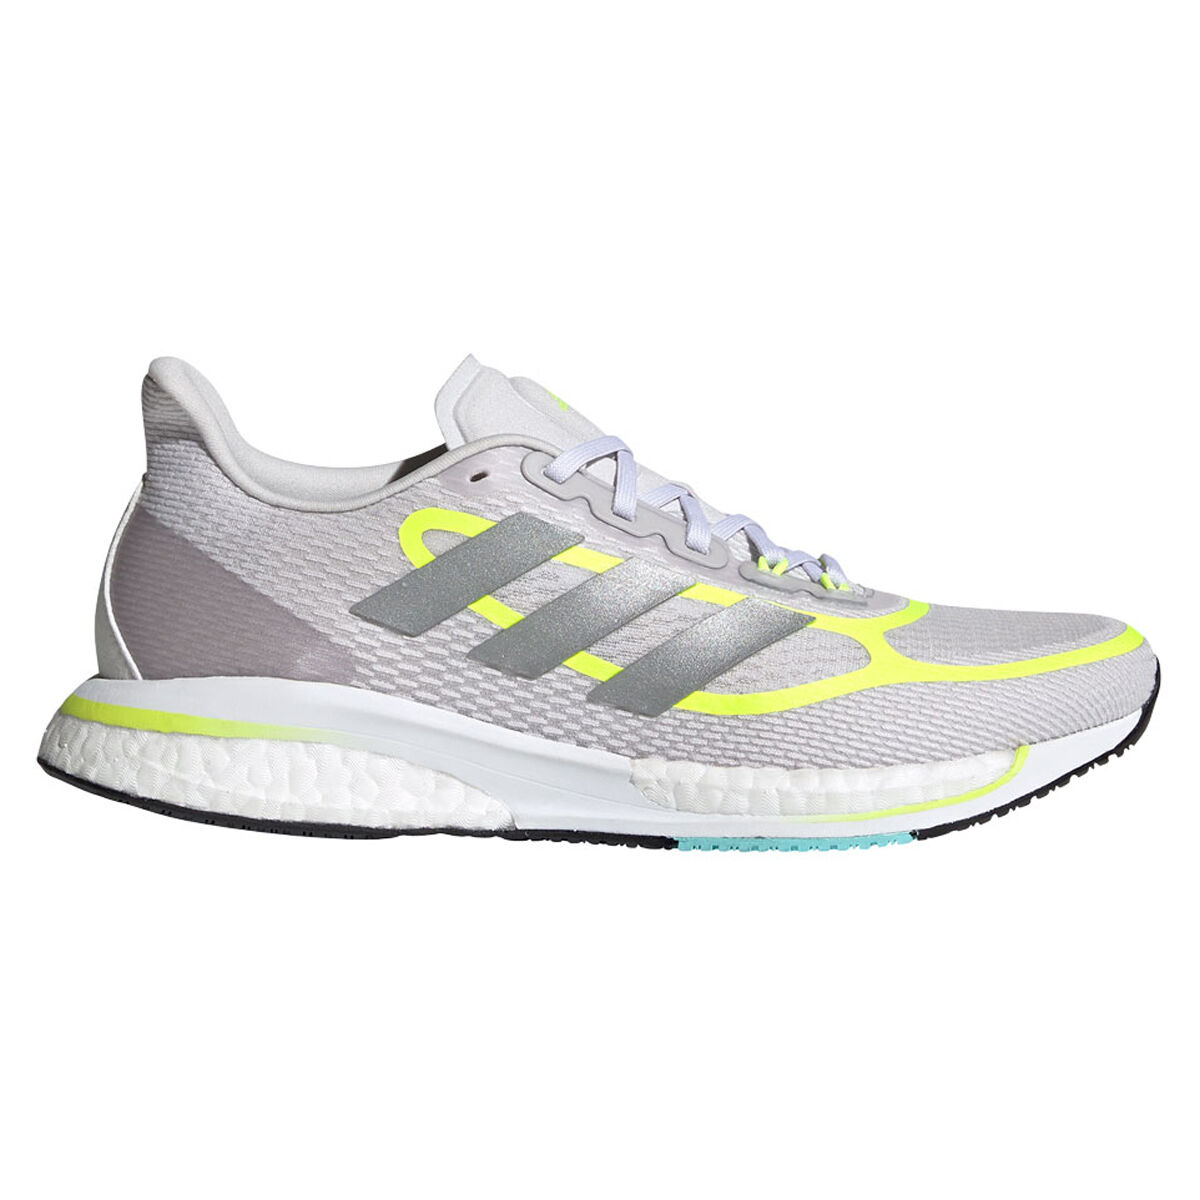 yeezy release philippines price guide today 2017 | adidas Supernova Womens Running Shoes